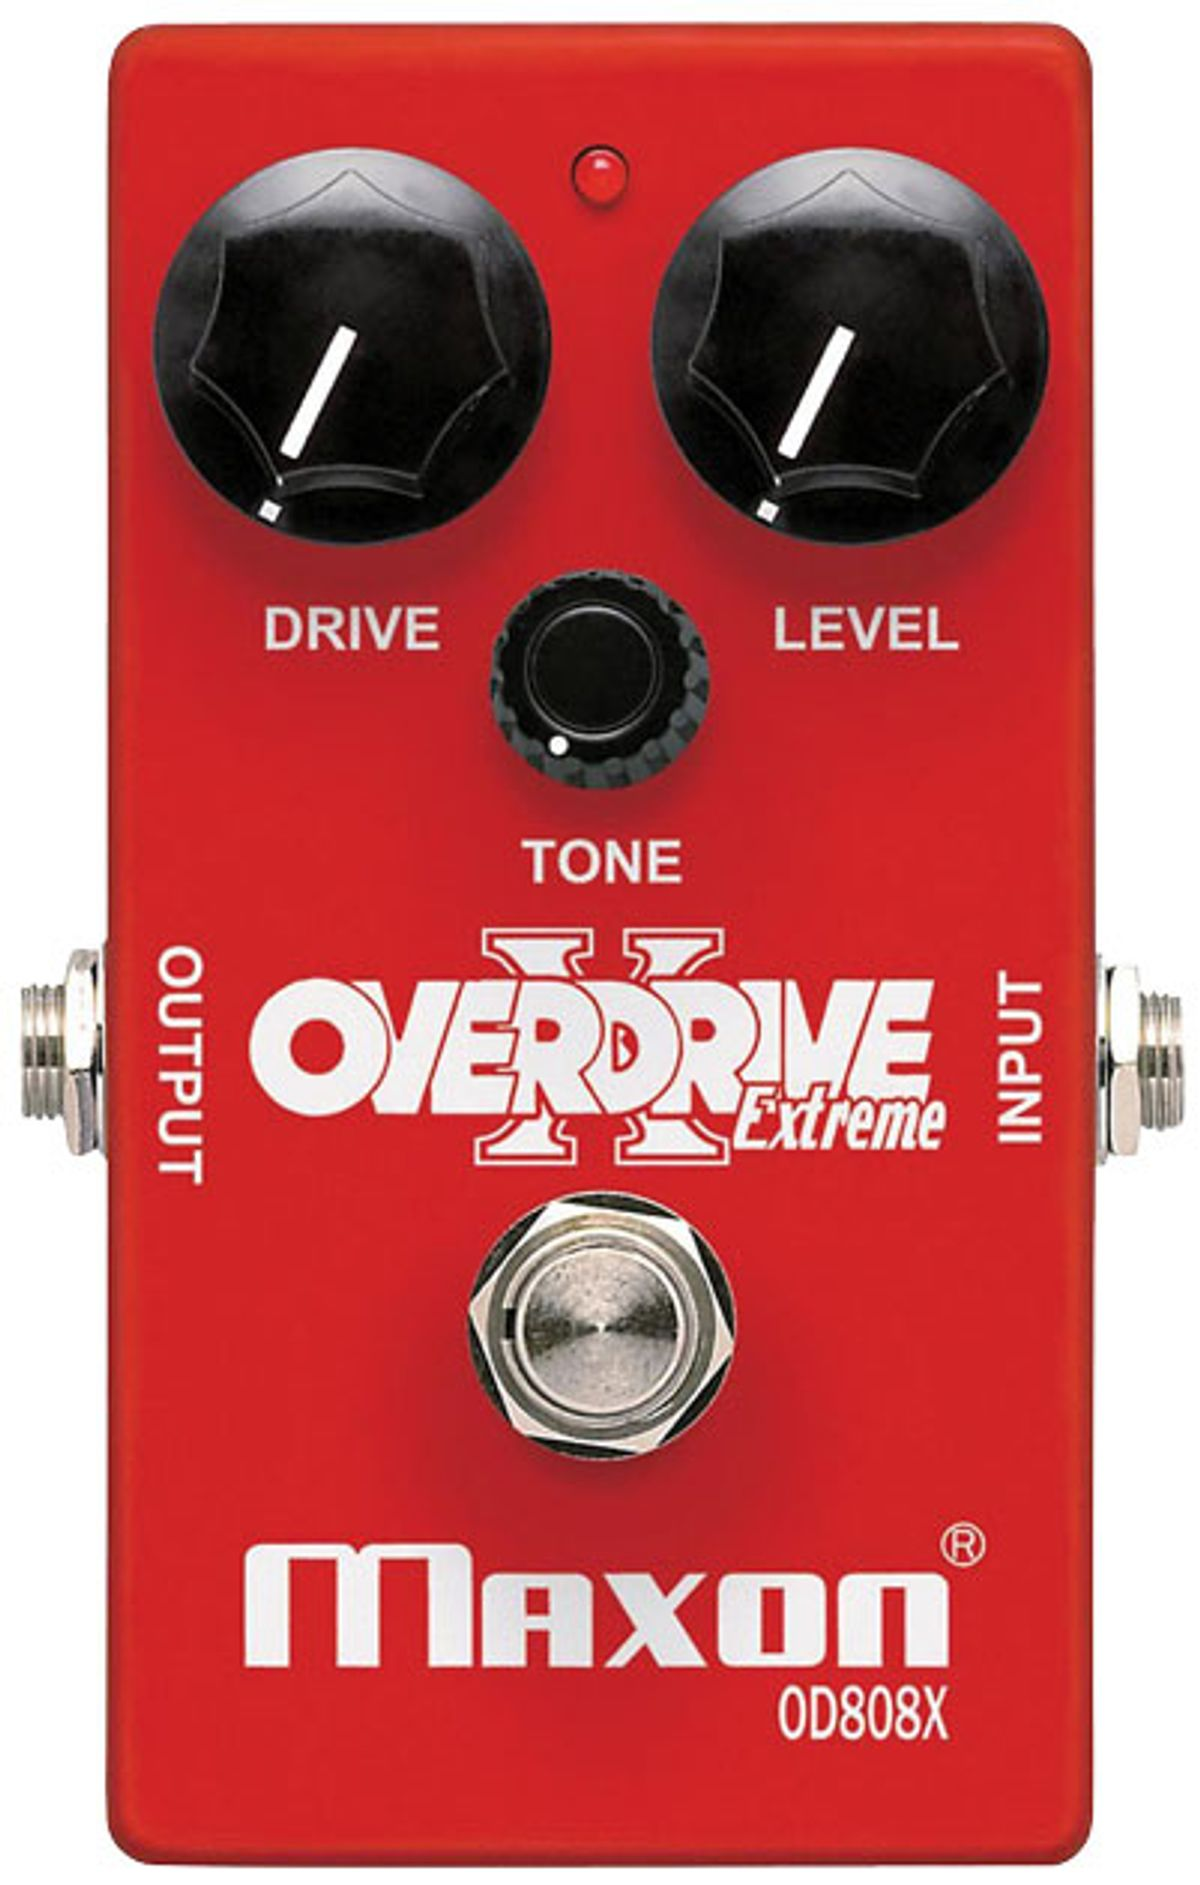 Maxon OD808X Overdrive Extreme Review